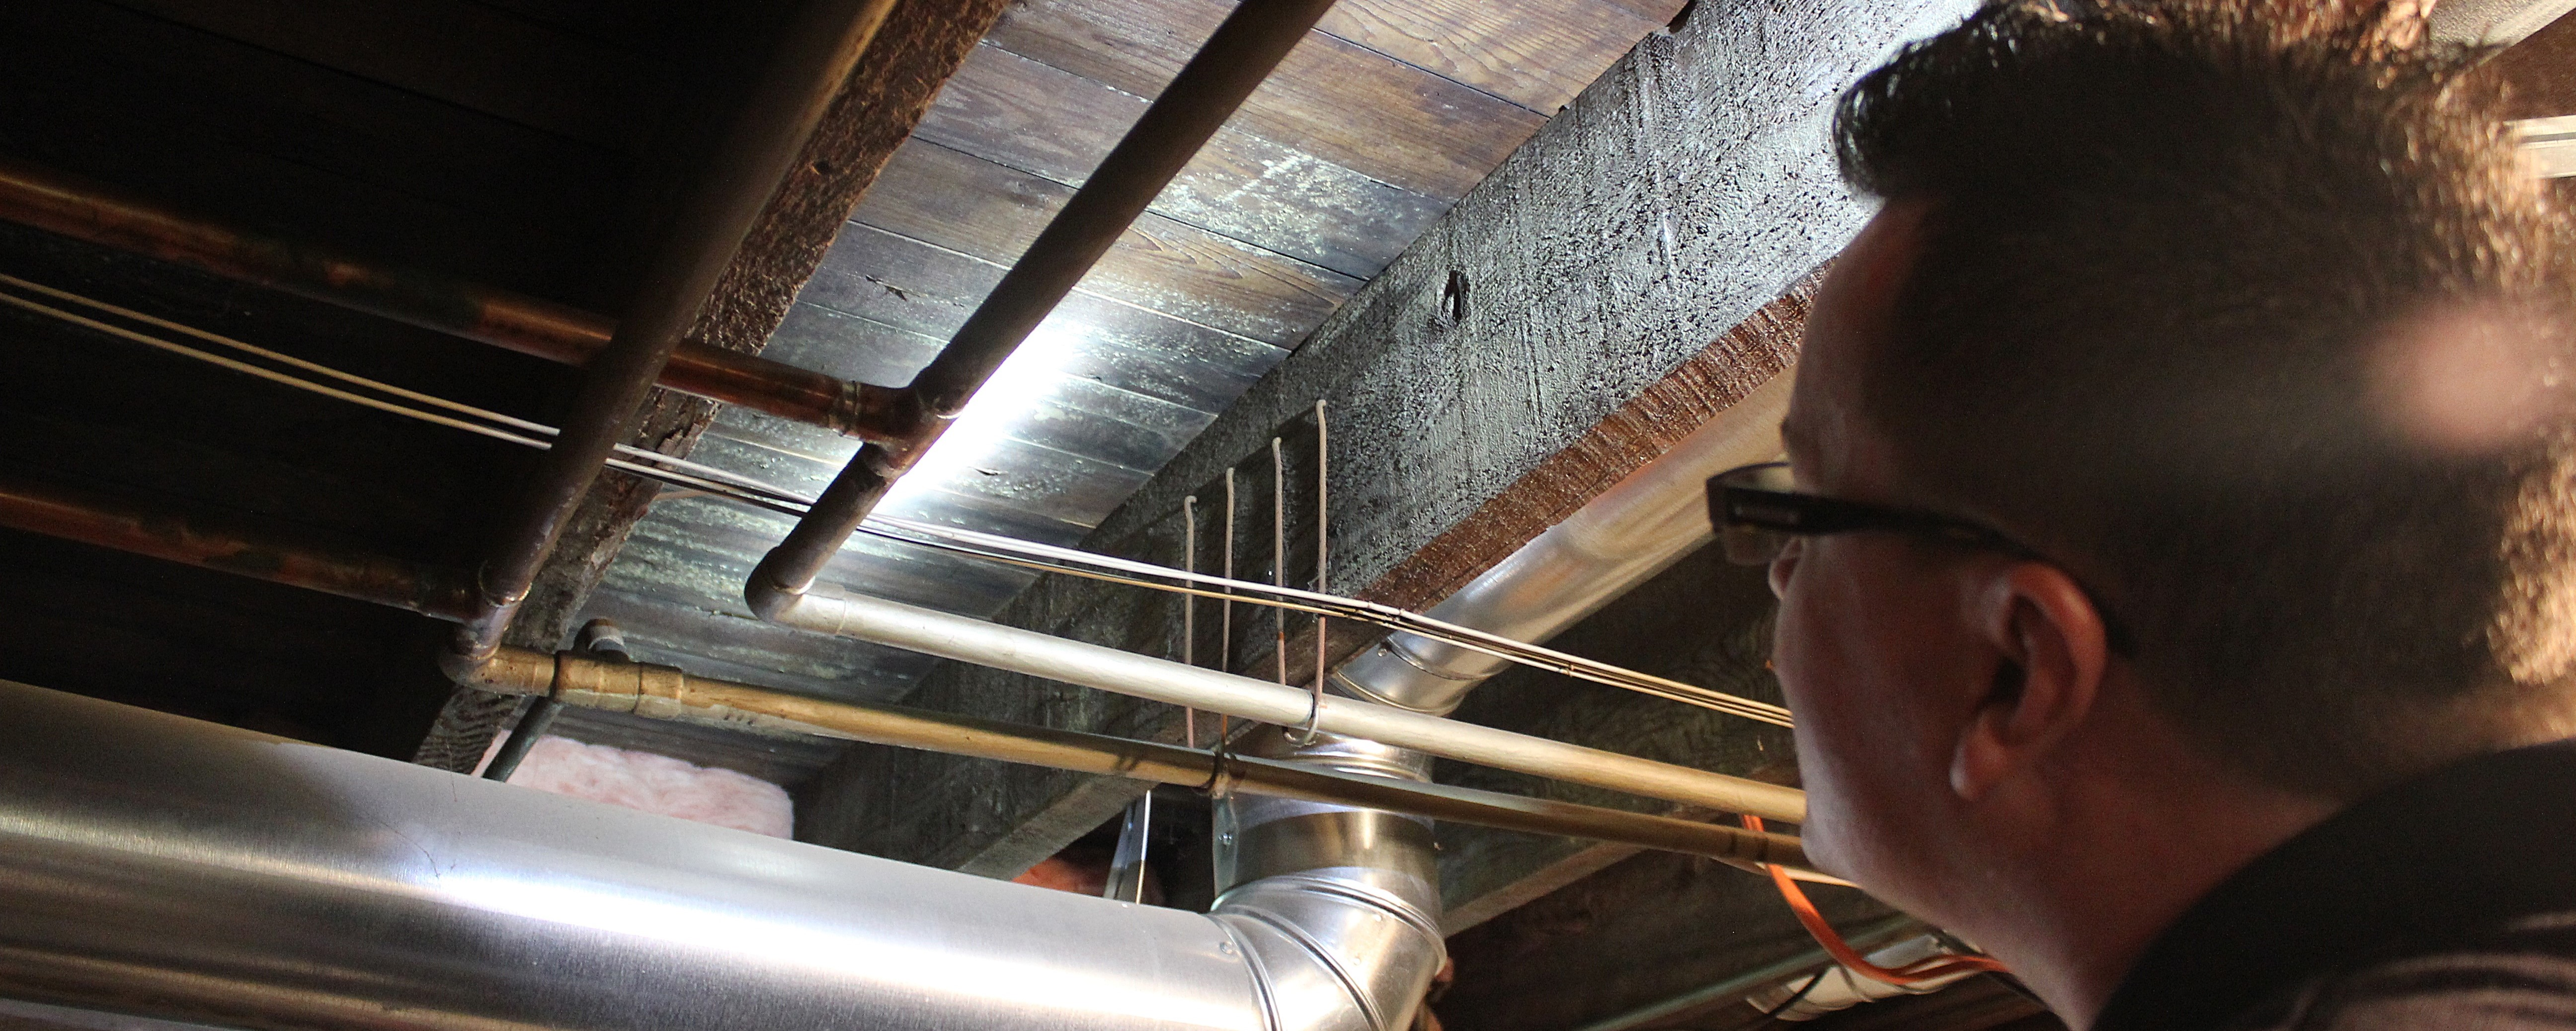 Professional Mold Testing Medford New Jersey 08055